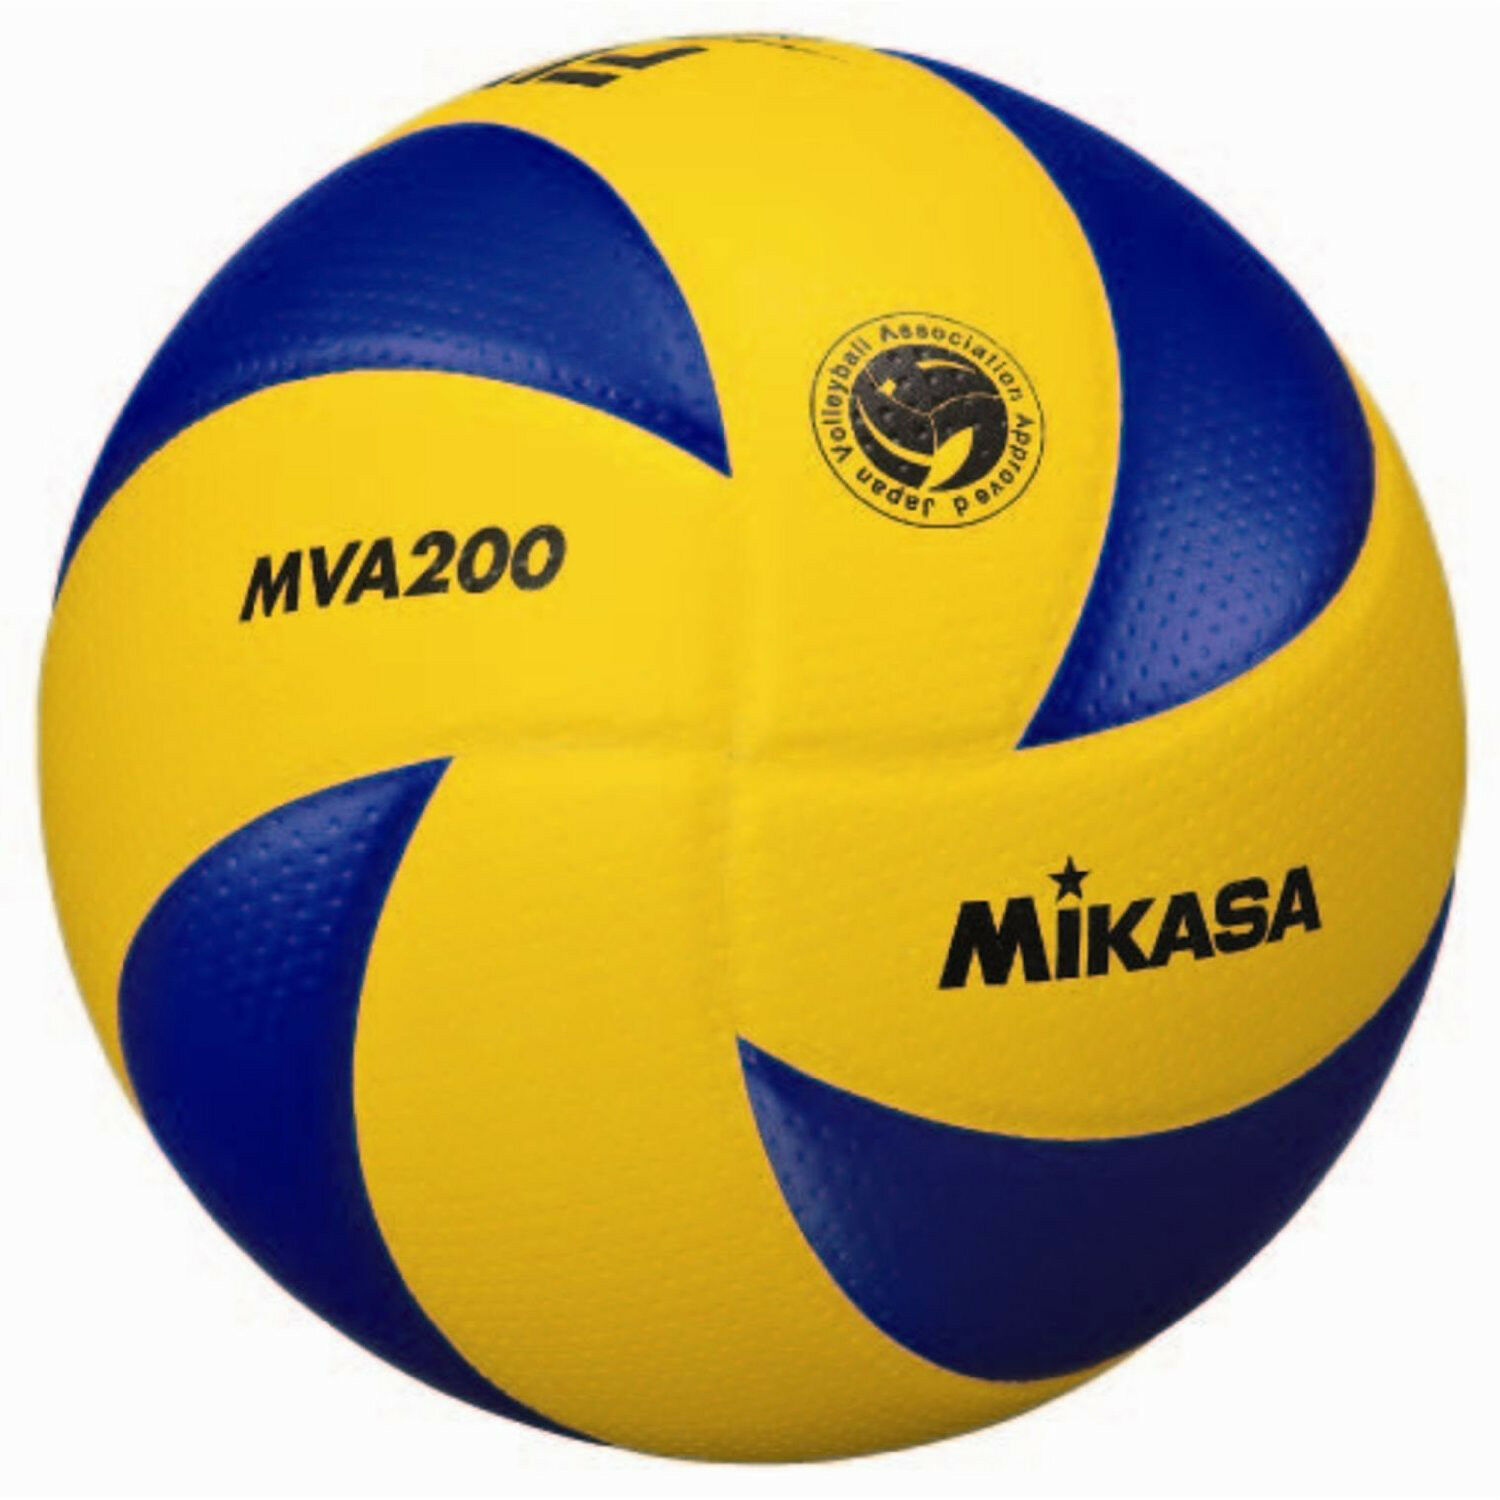 Mikasa Japan Mva200 Fiva Official Volleyball Game Ball Size 5 At0427 For Sale Online Ebay